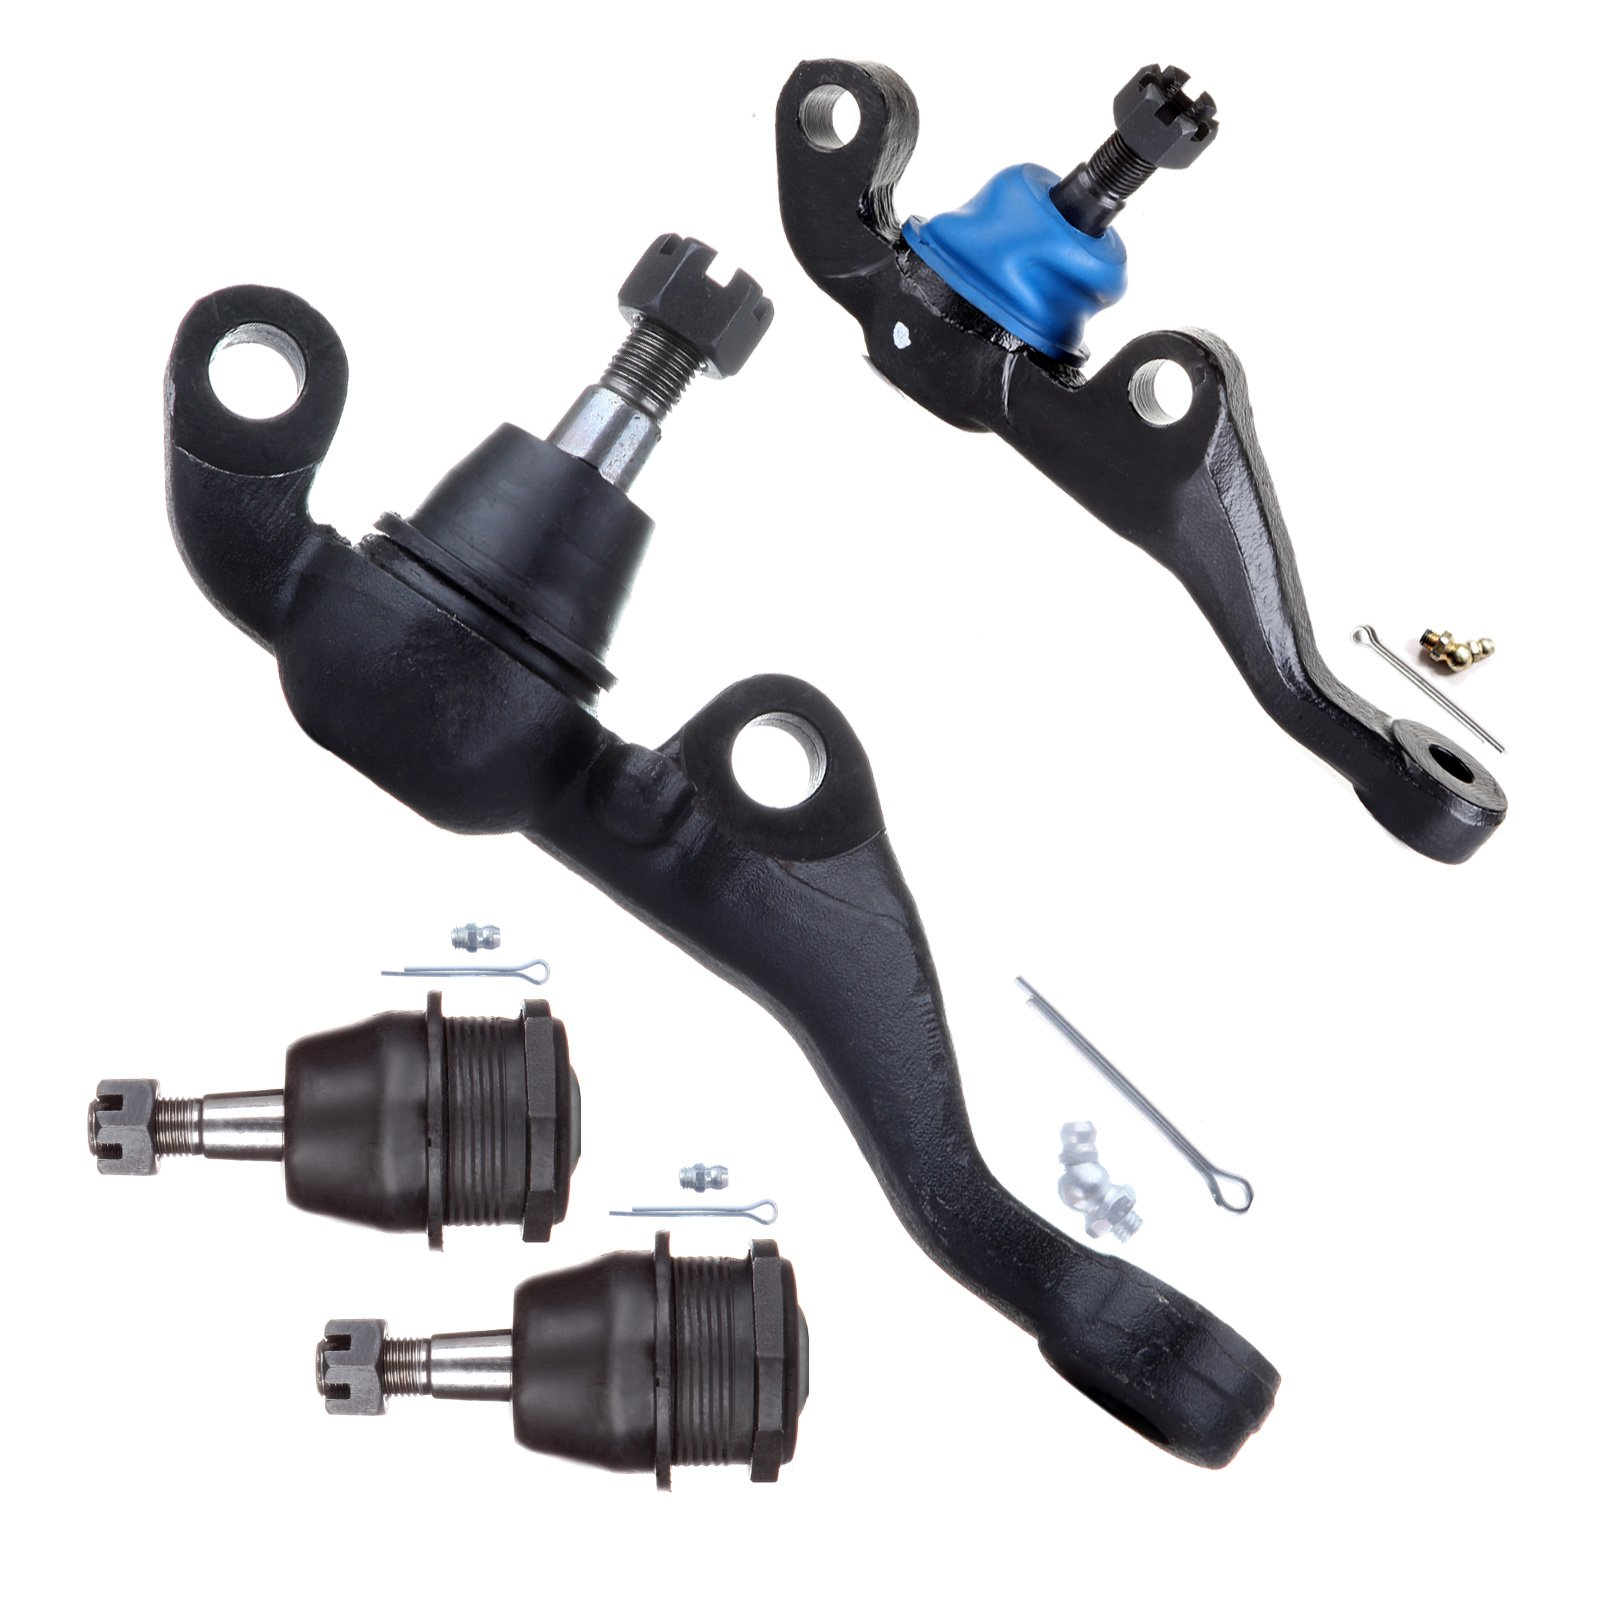 ECCPP Front Upper Lower Ball Joints Complete Kit for 1970-1974 Dodge Challenger (4Pcs)